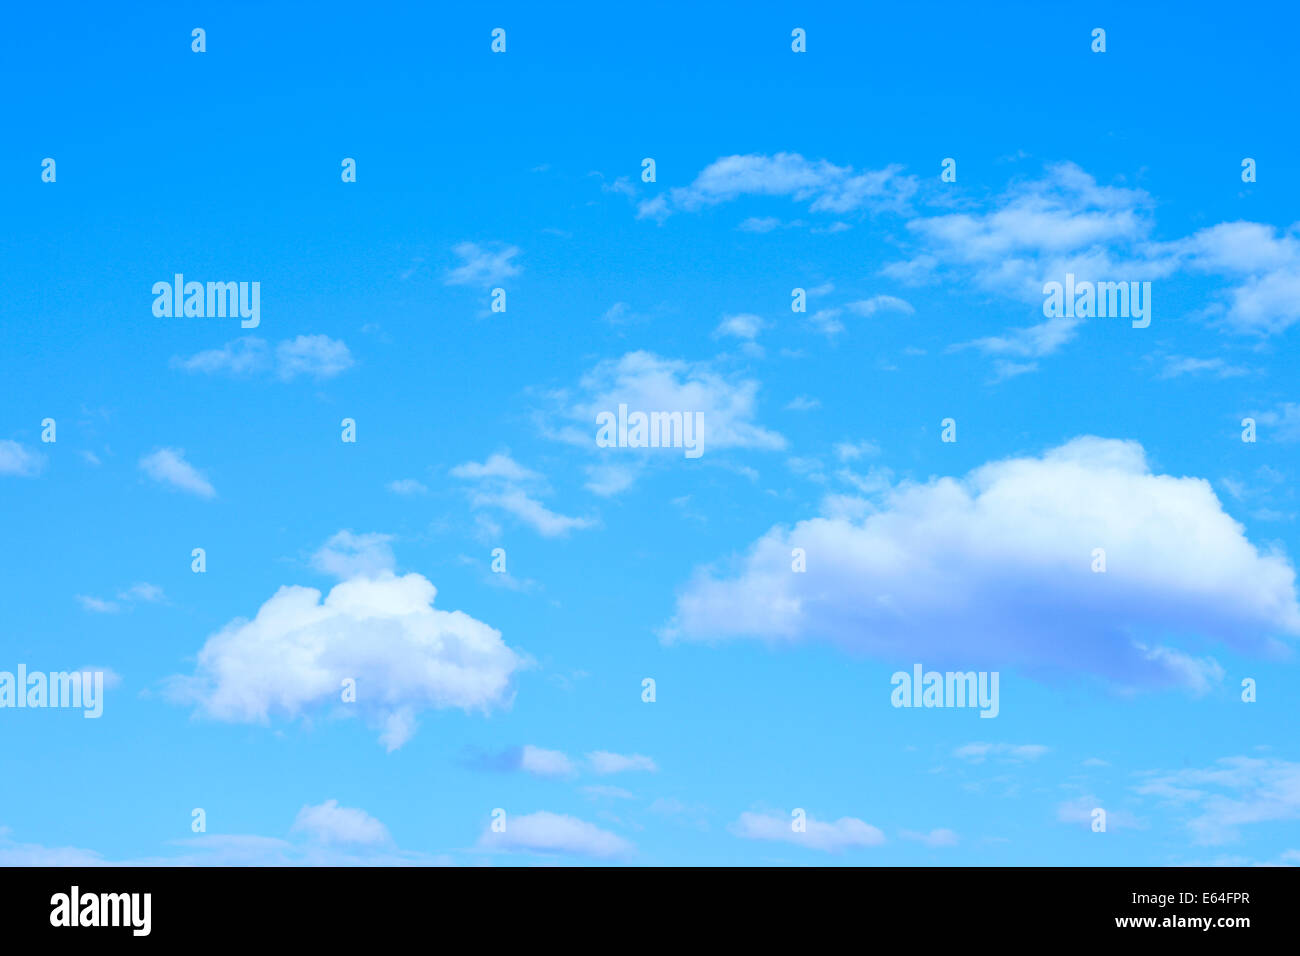 Blue sky and fluffy clouds, may be used as background - Stock Image